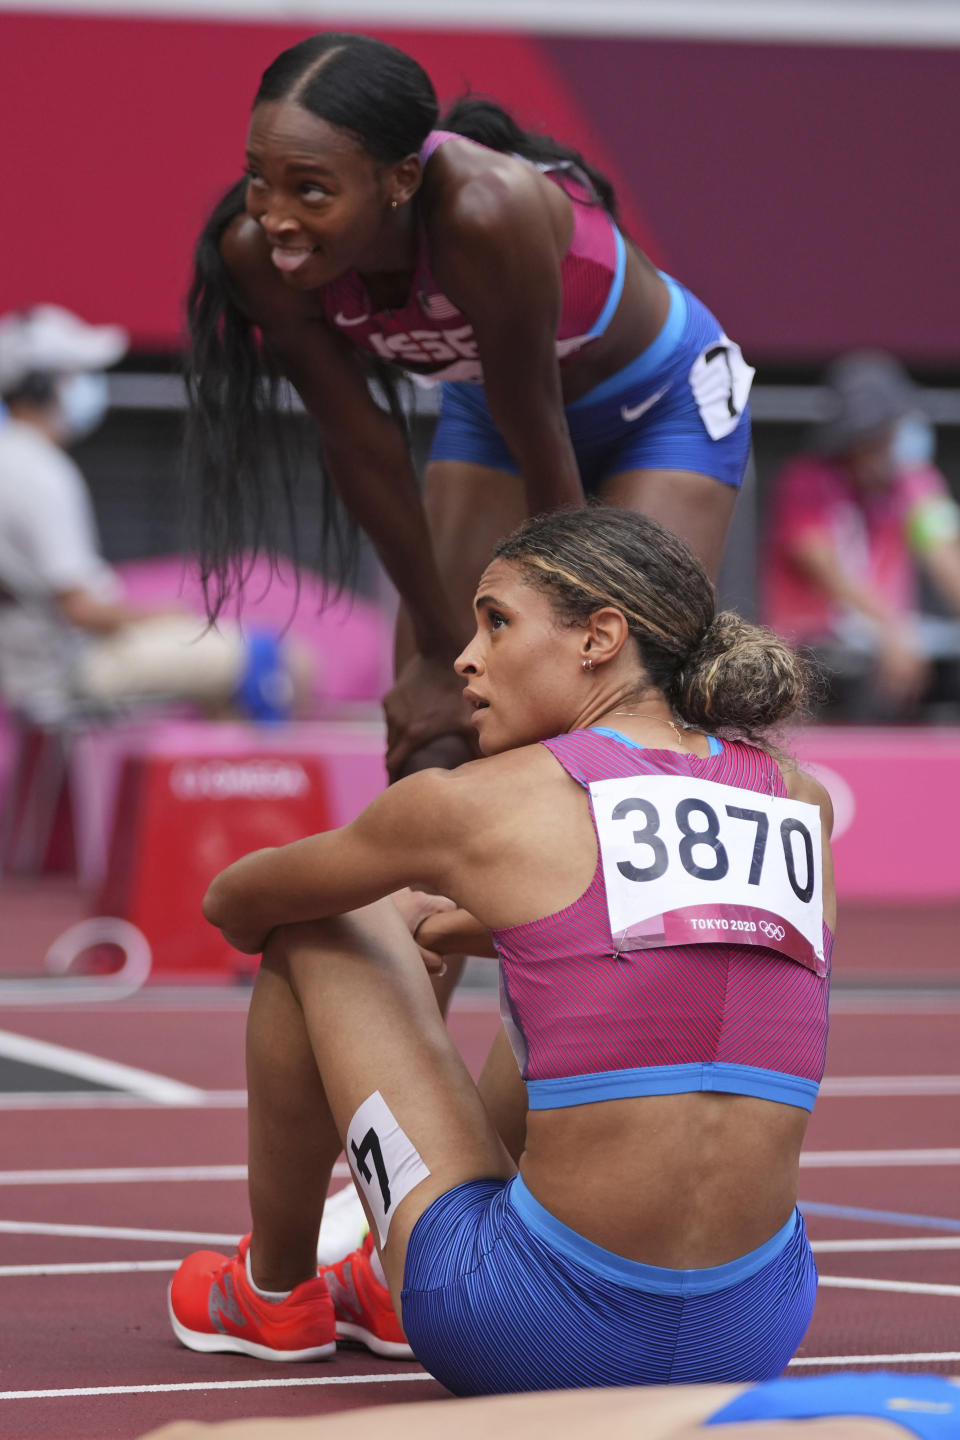 Sydney McLaughlin, bottom, of the United States, and teammate Dalilah Muhammad look at the scoreboard after the final of the women's 400-meter hurdles at the 2020 Summer Olympics, Wednesday, Aug. 4, 2021, in Tokyo. (AP Photo/Matthias Schrader)